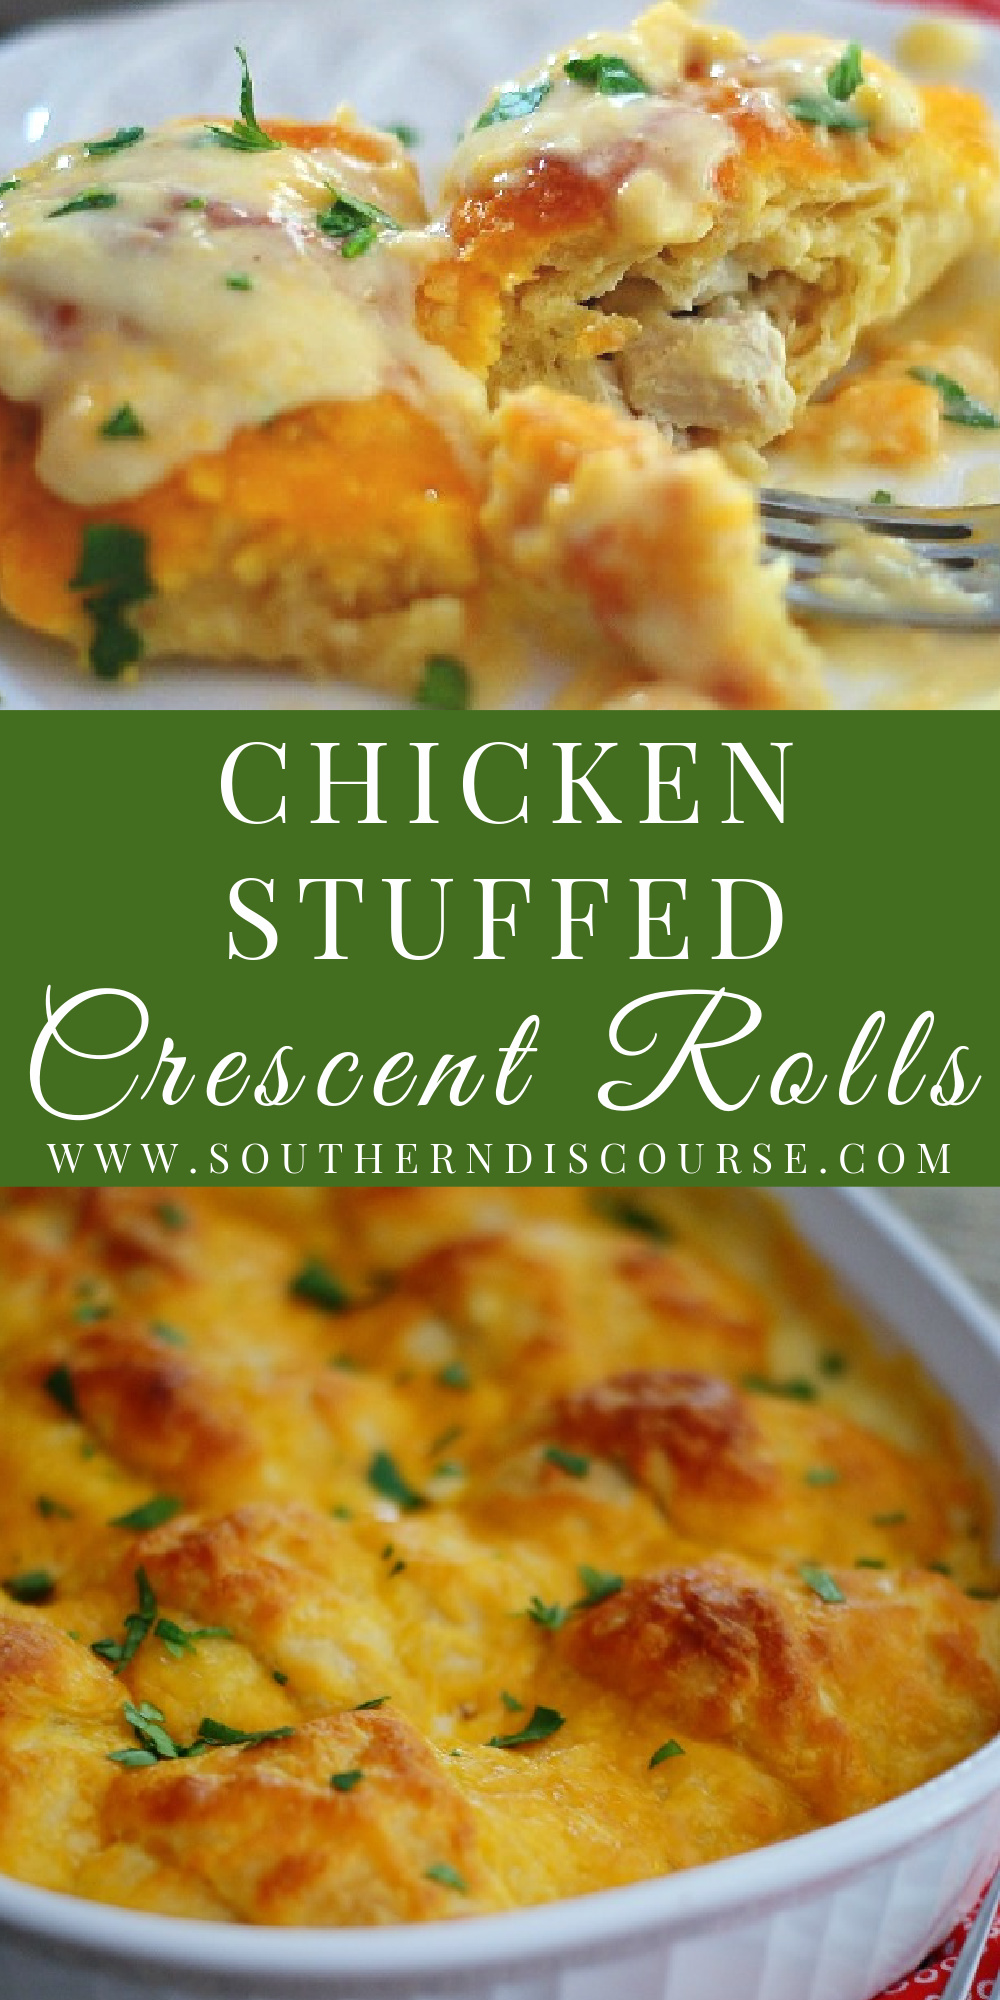 This recipe speaks for itself- buttery, flaky crescent rolls, stuffed with a cream cheese and chicken filling and smothered in a cheesy cream sauce. In short, Chicken Stuffed Crescent Rolls are quite simply divine.